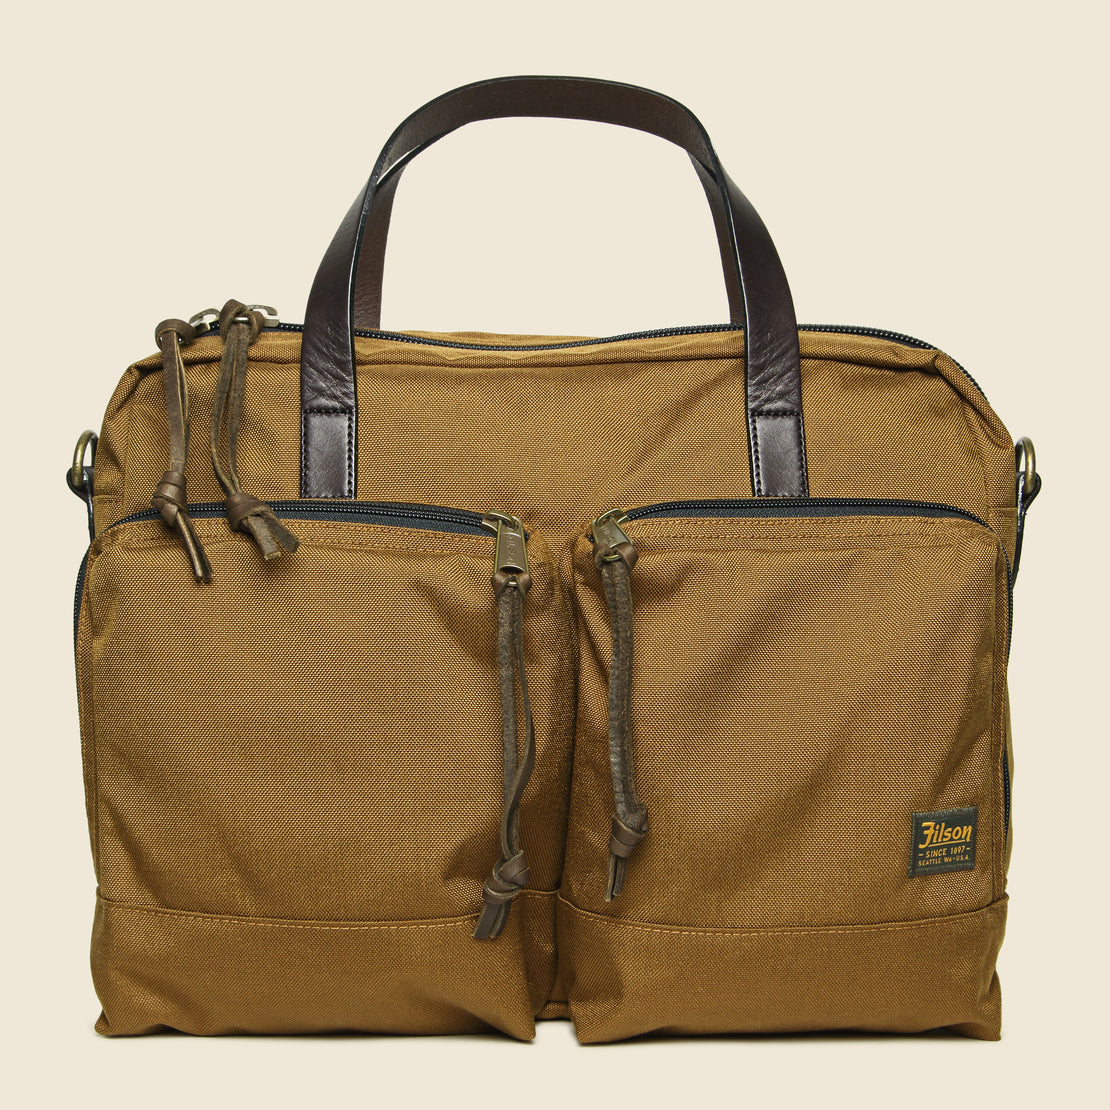 Filson Dryden Briefcase - Whiskey